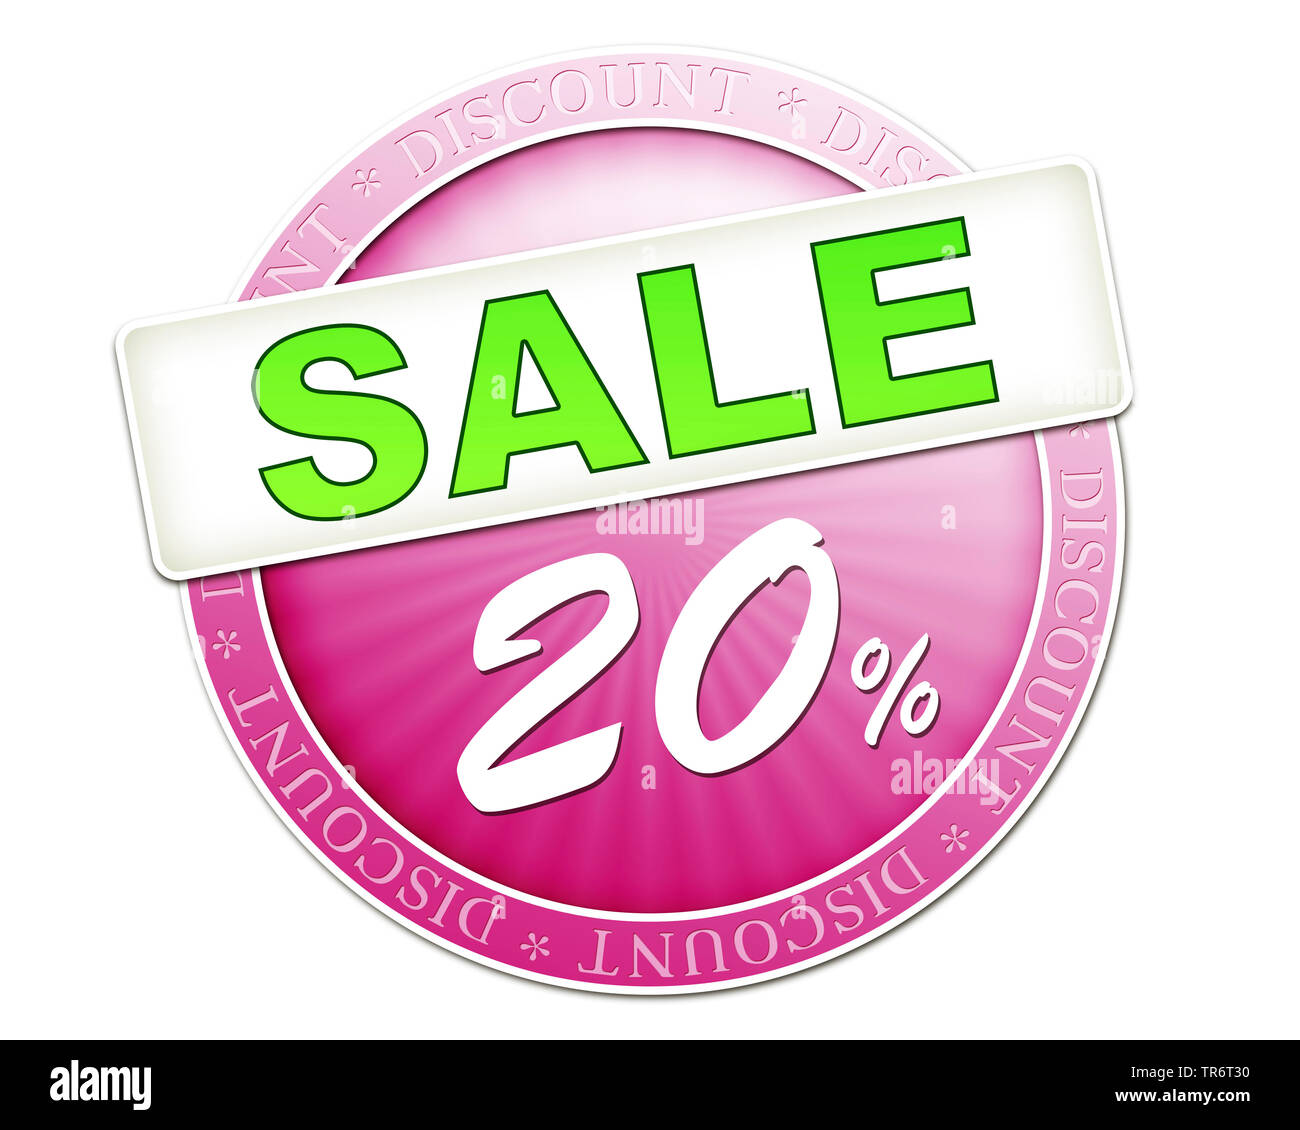 20 Percent Stock Photos & 20 Percent Stock Images - Alamy